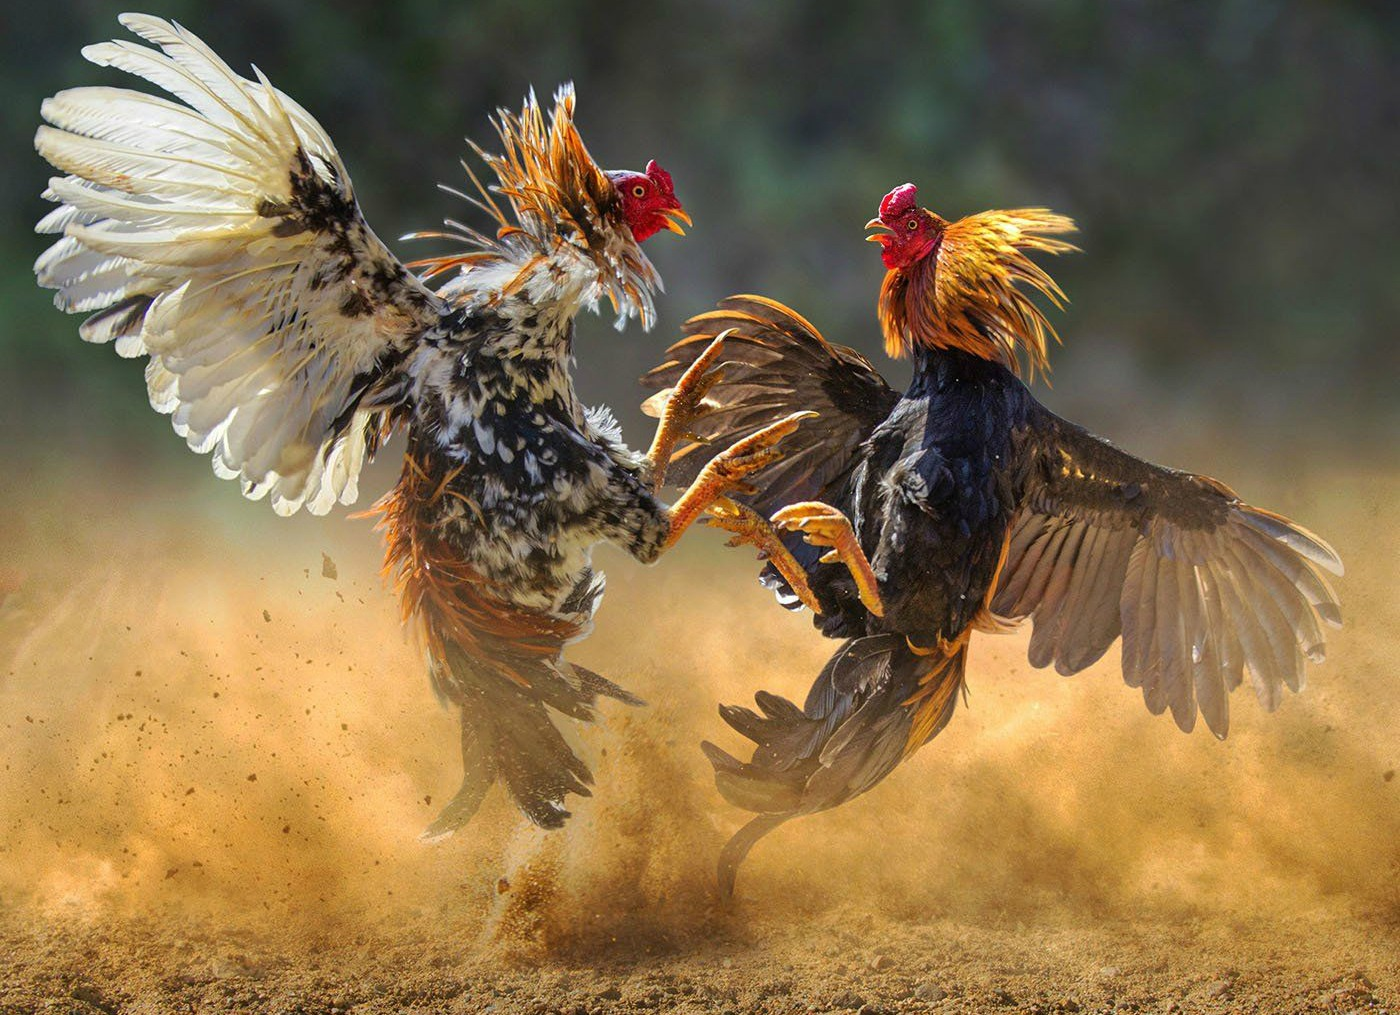 Roosters cock fighting